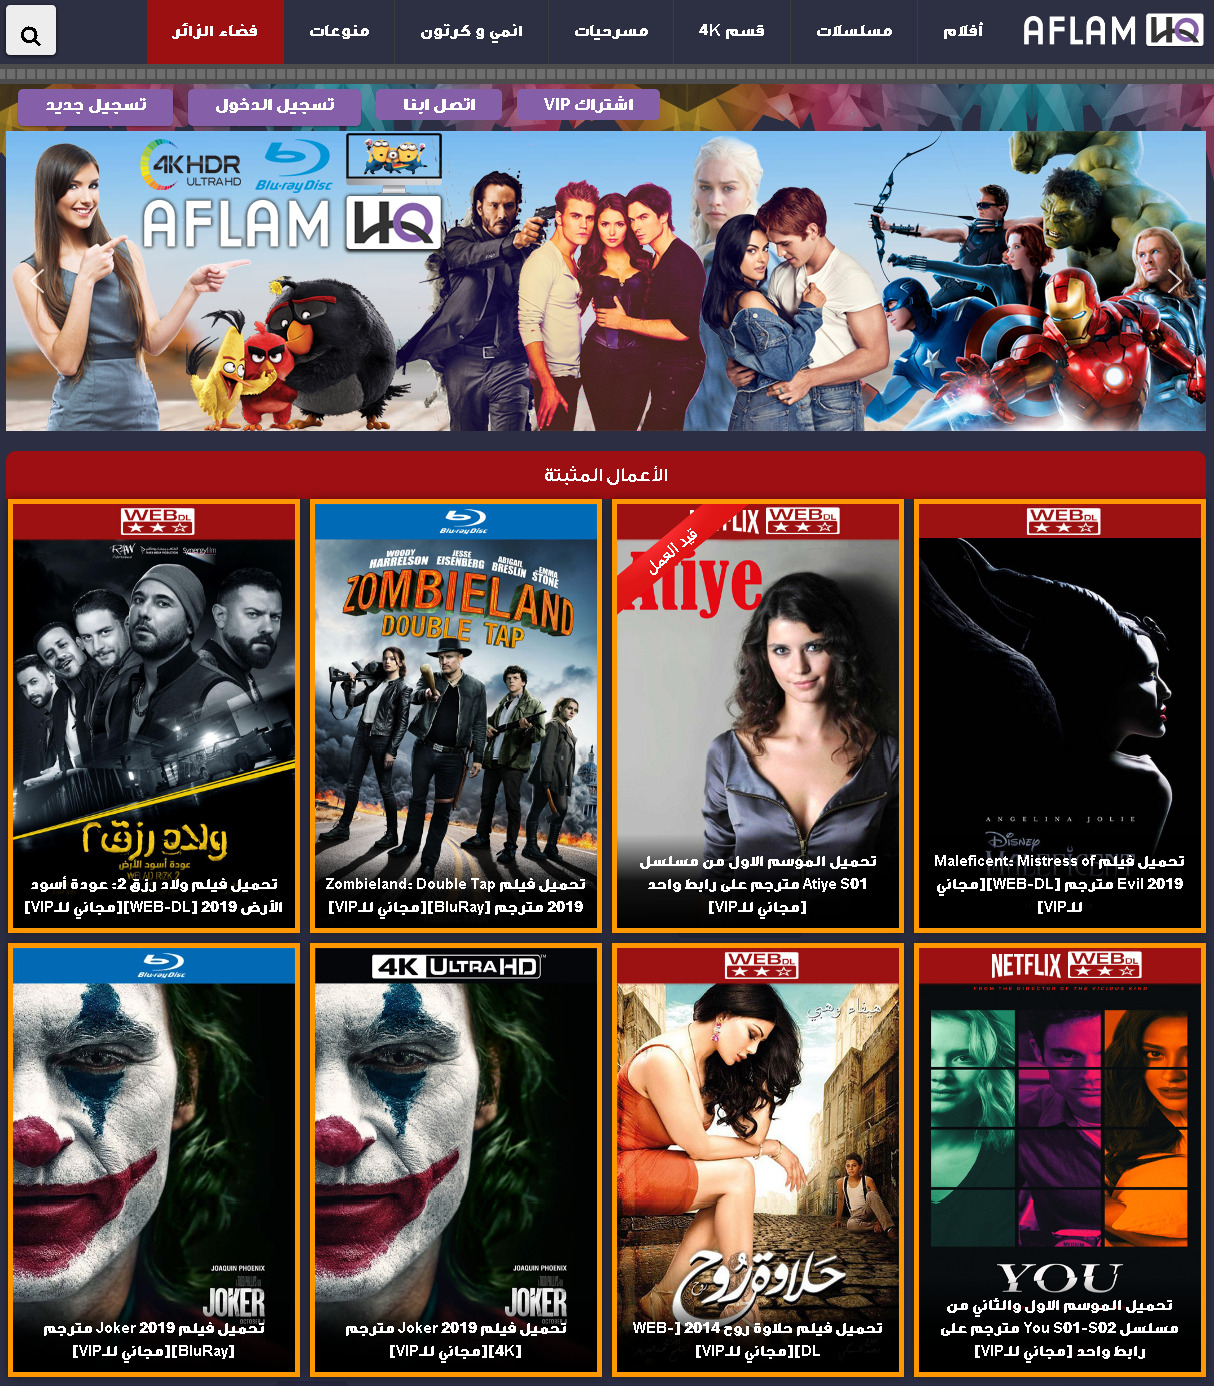 Home Of 4k Bluray Movies Series Https Aflamhq Vip Movies Movie Posters Lix